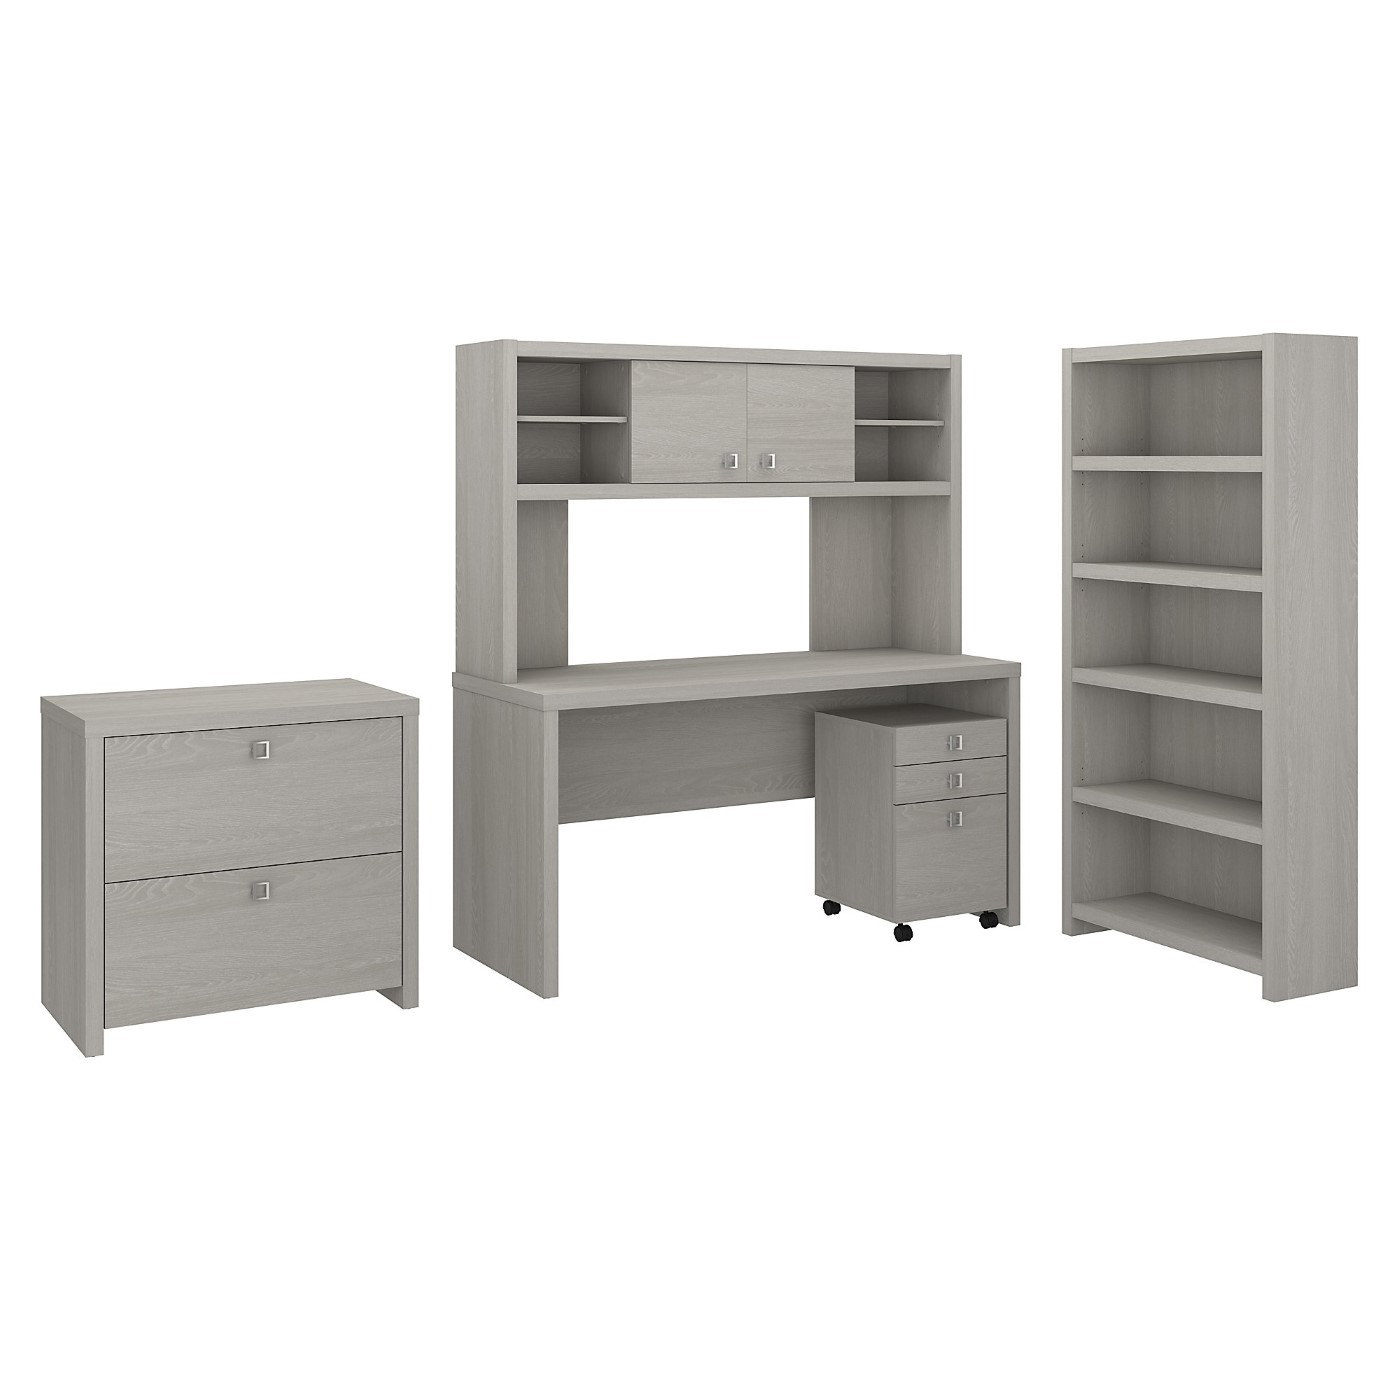 The kathy ireland� Echo Desk with Hutch, Bookcase and File Cabinets is Sustainable Eco Friendly Furniture. Includes Free Shipping! 30H x 72L x 72W  VIDEO BELOW.